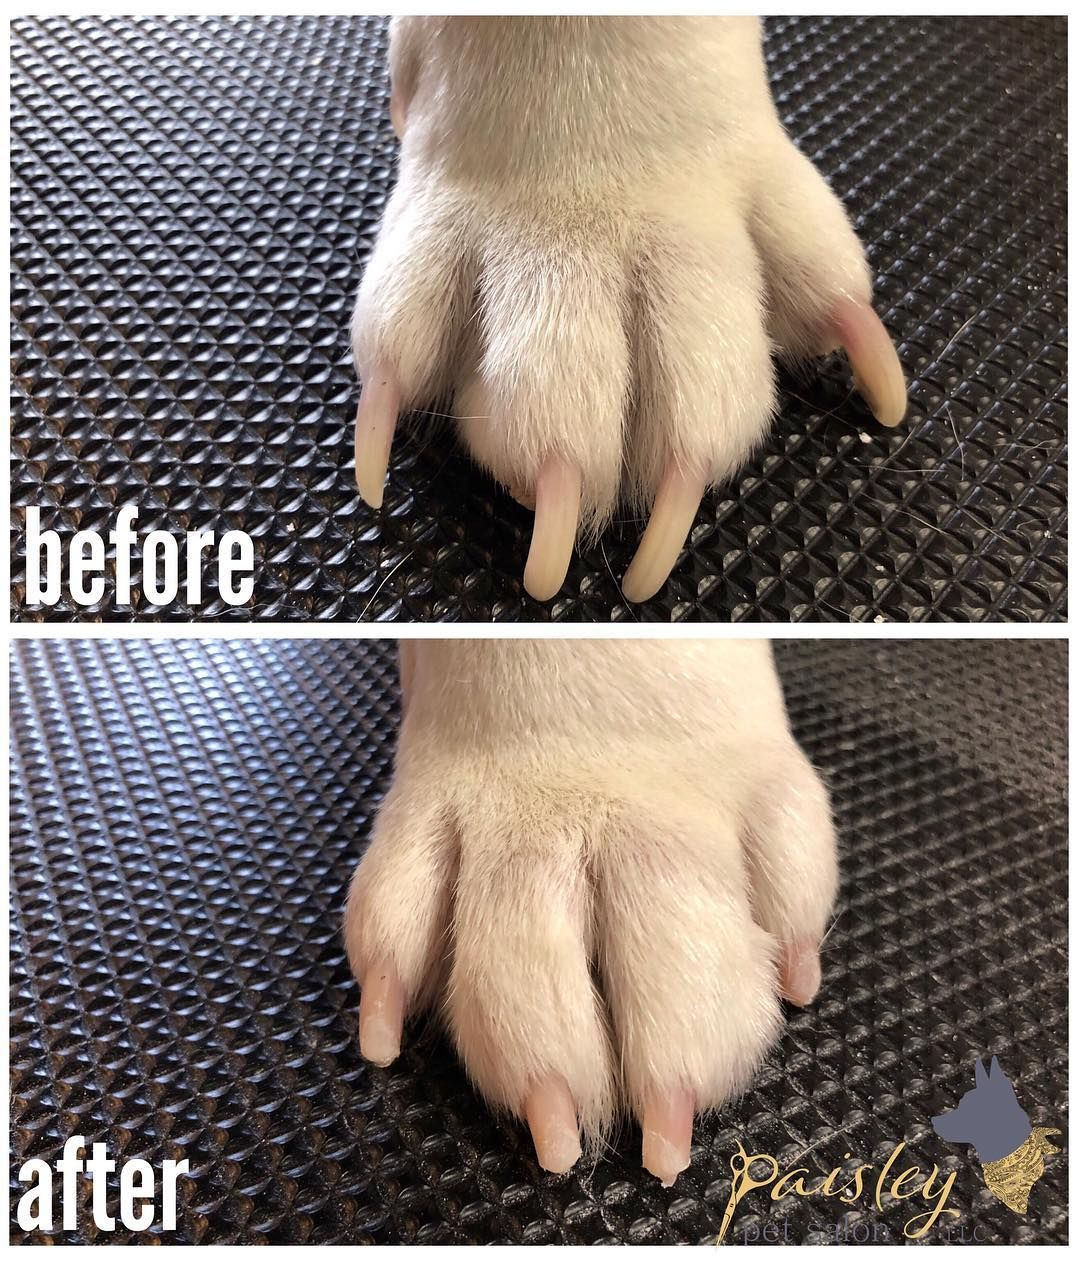 how to trim puppy nails with grinder